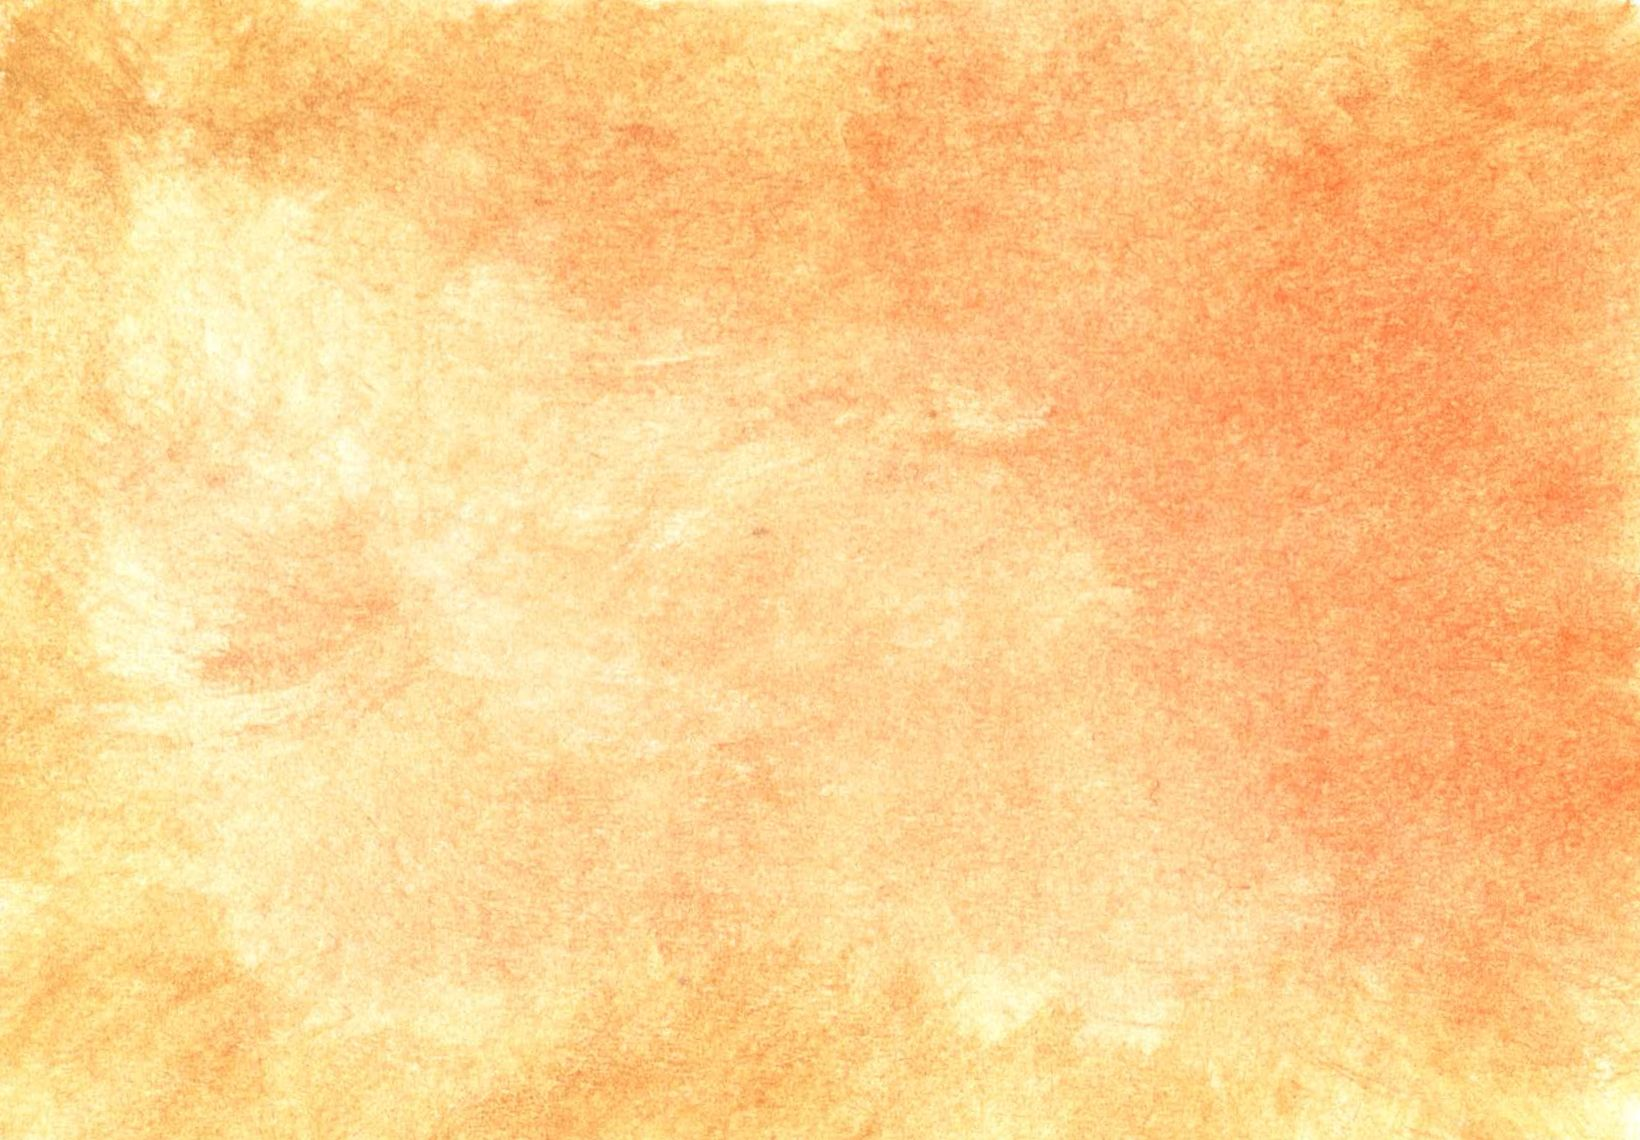 Watercolor Textures Tumblr Displaying 13 Images For Watercolor